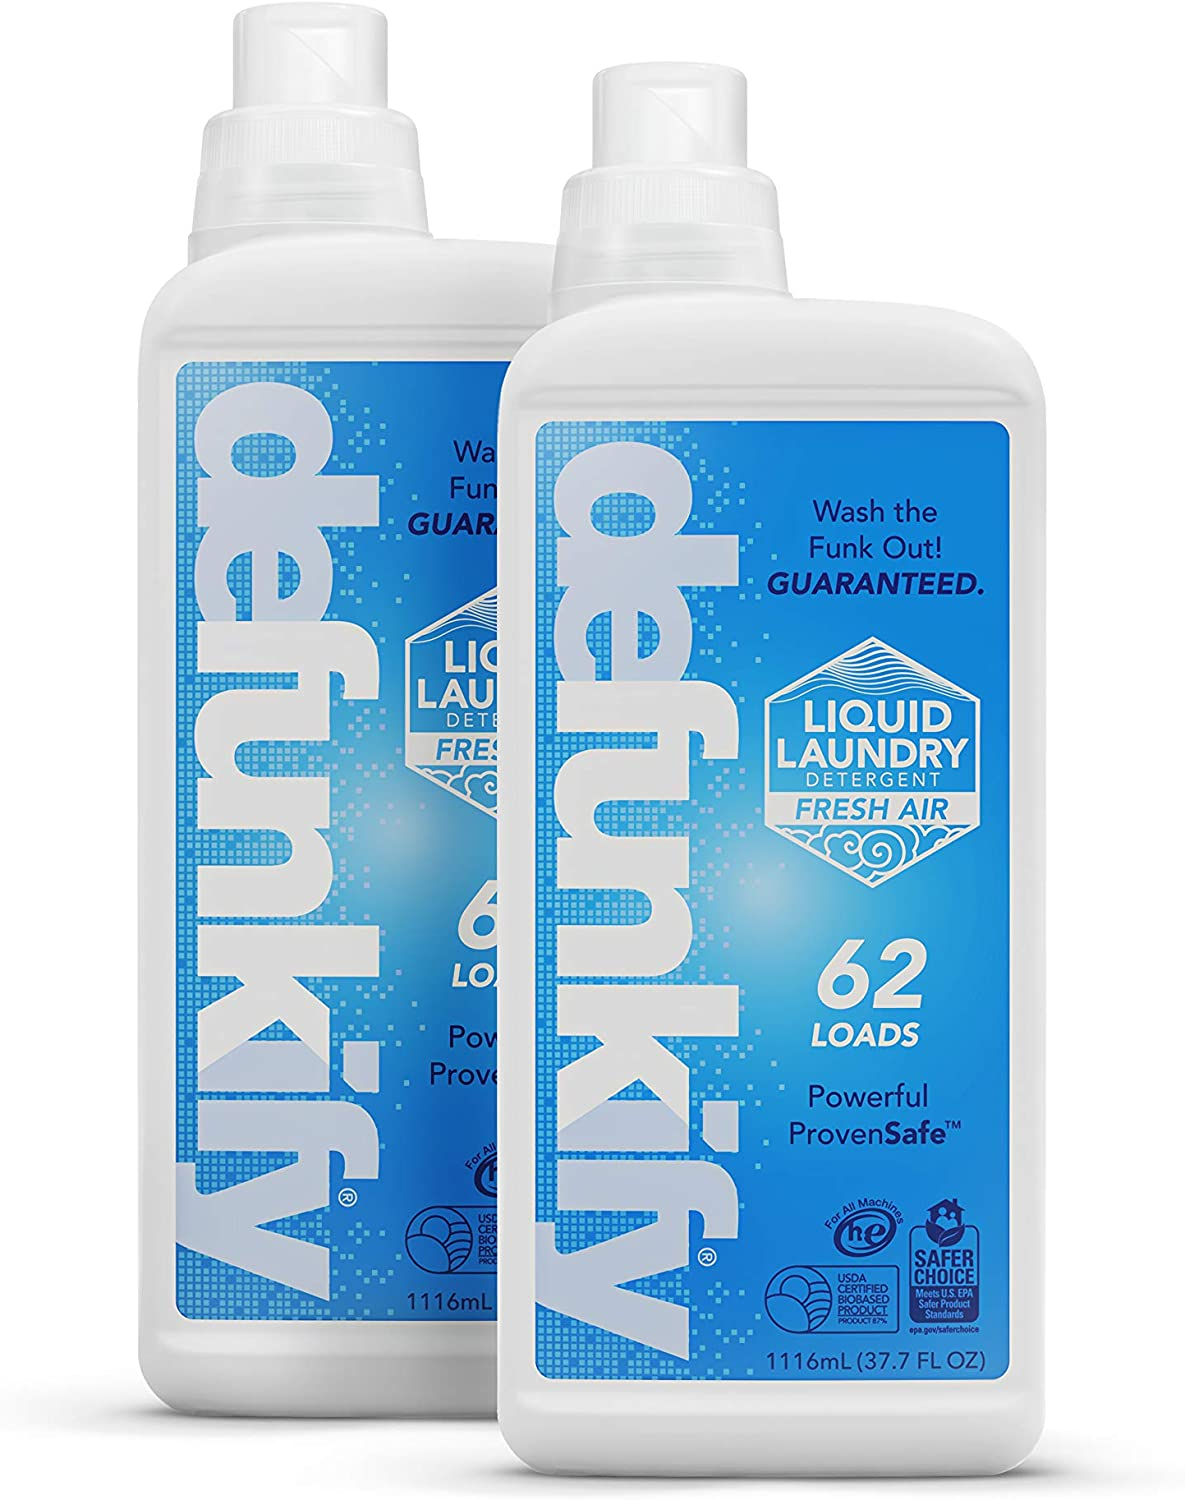 Defunkify Liquid Laundry Detergent, Fresh Air - Crushes Odor - EPA Safer Choice - 87% BioBased - 124 Loads (2-Pack of 62 Load Bottles) (Fresh Air)